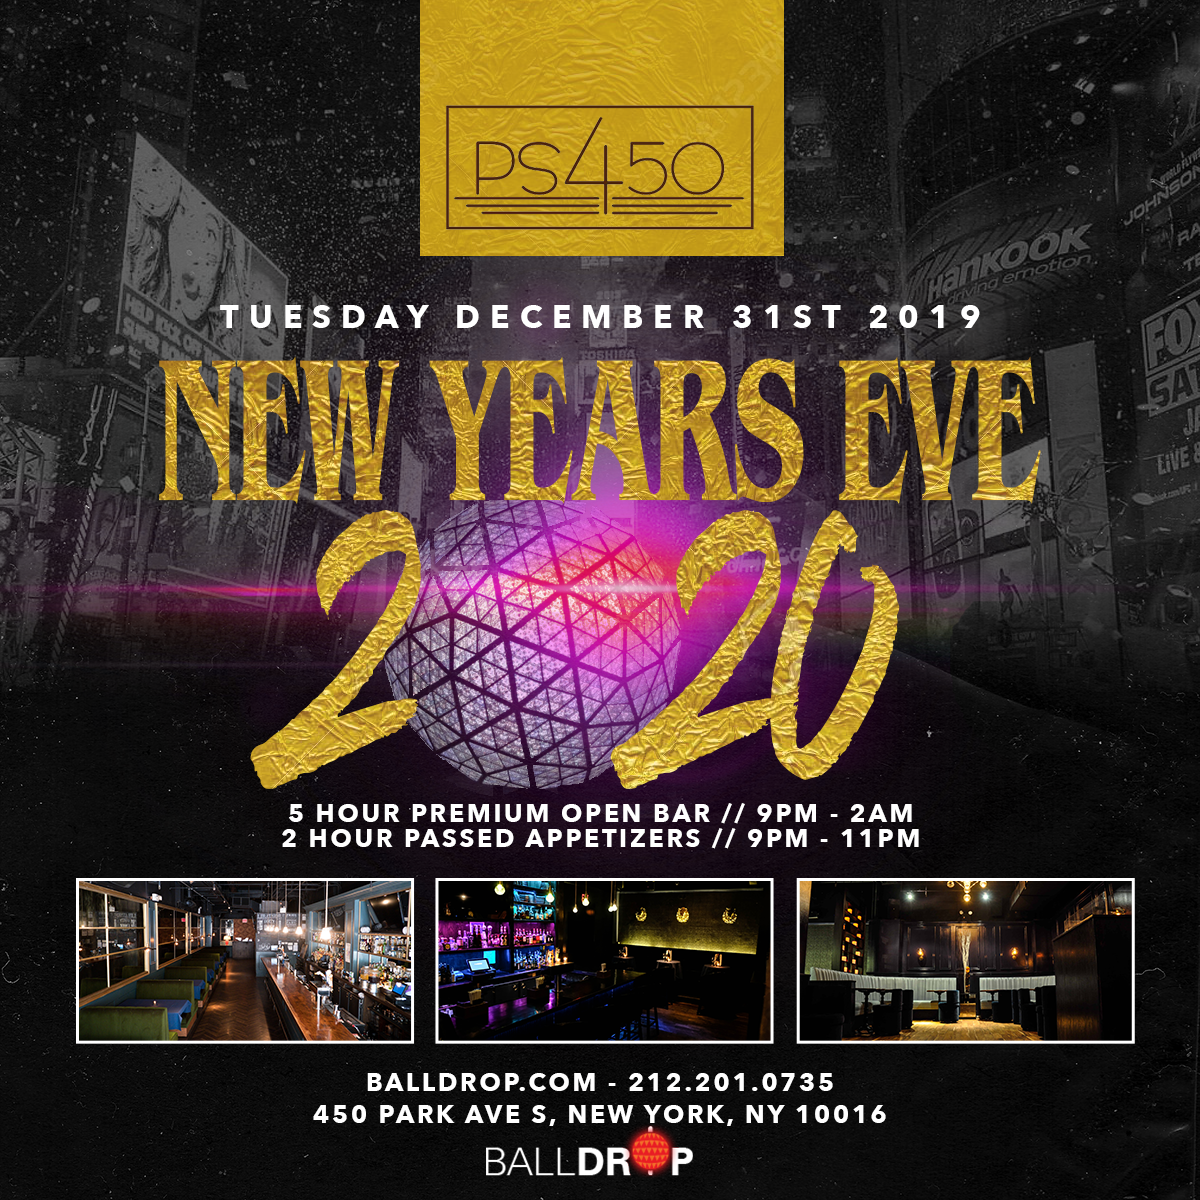 PS 450 NYC New Years Eve 2021